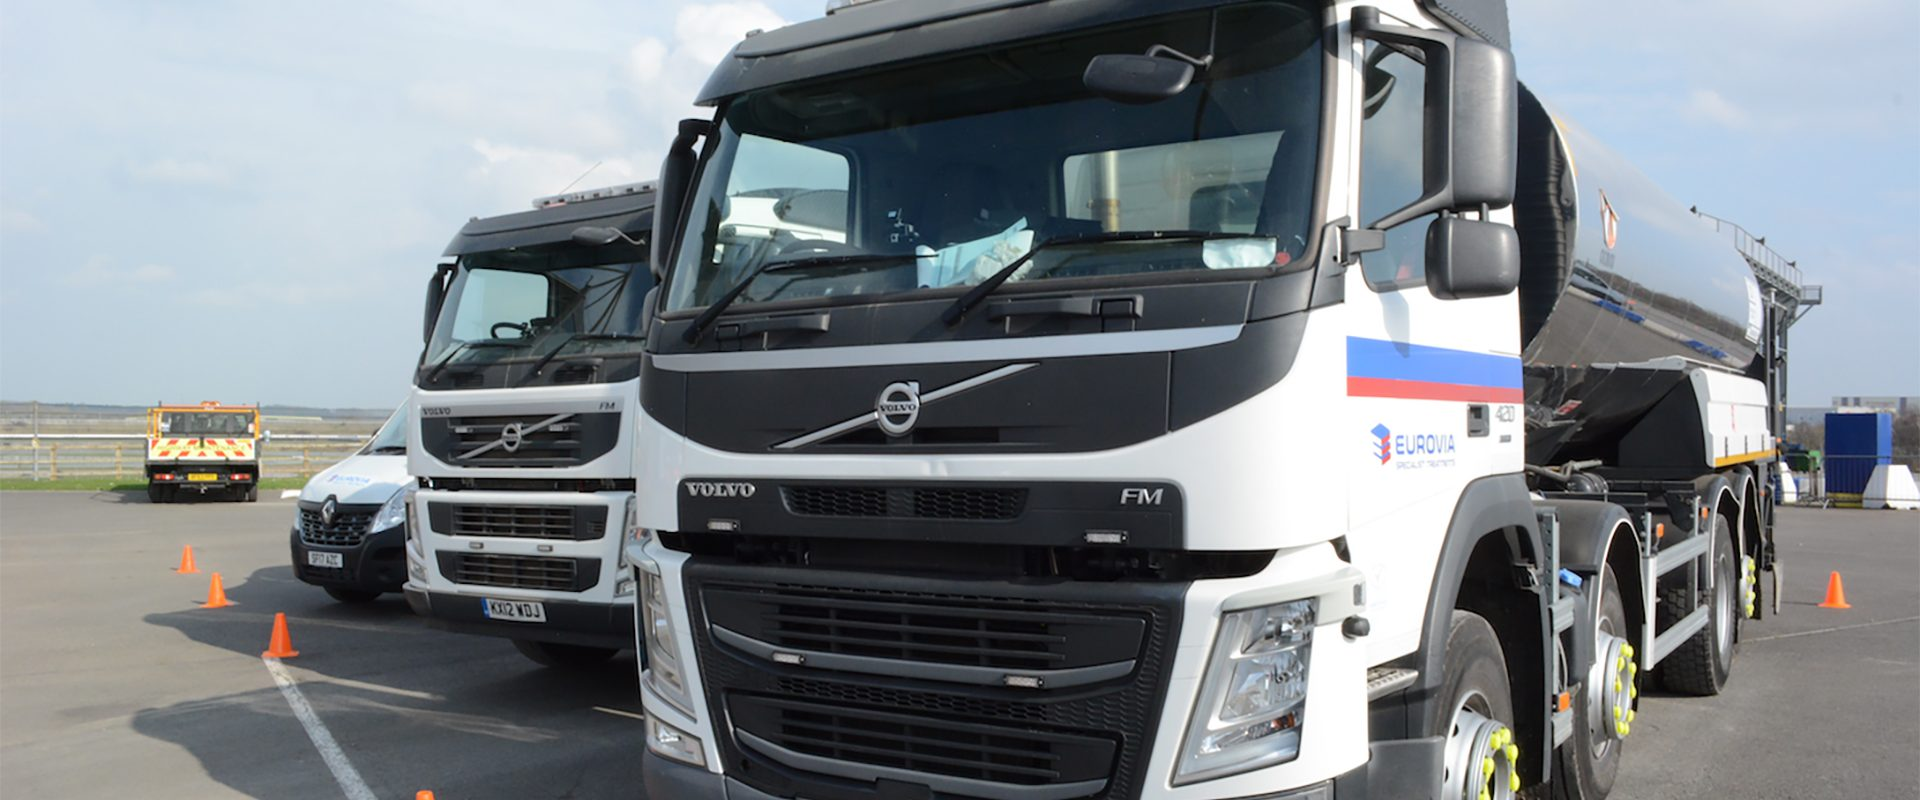 Large Goods Vehicles Course